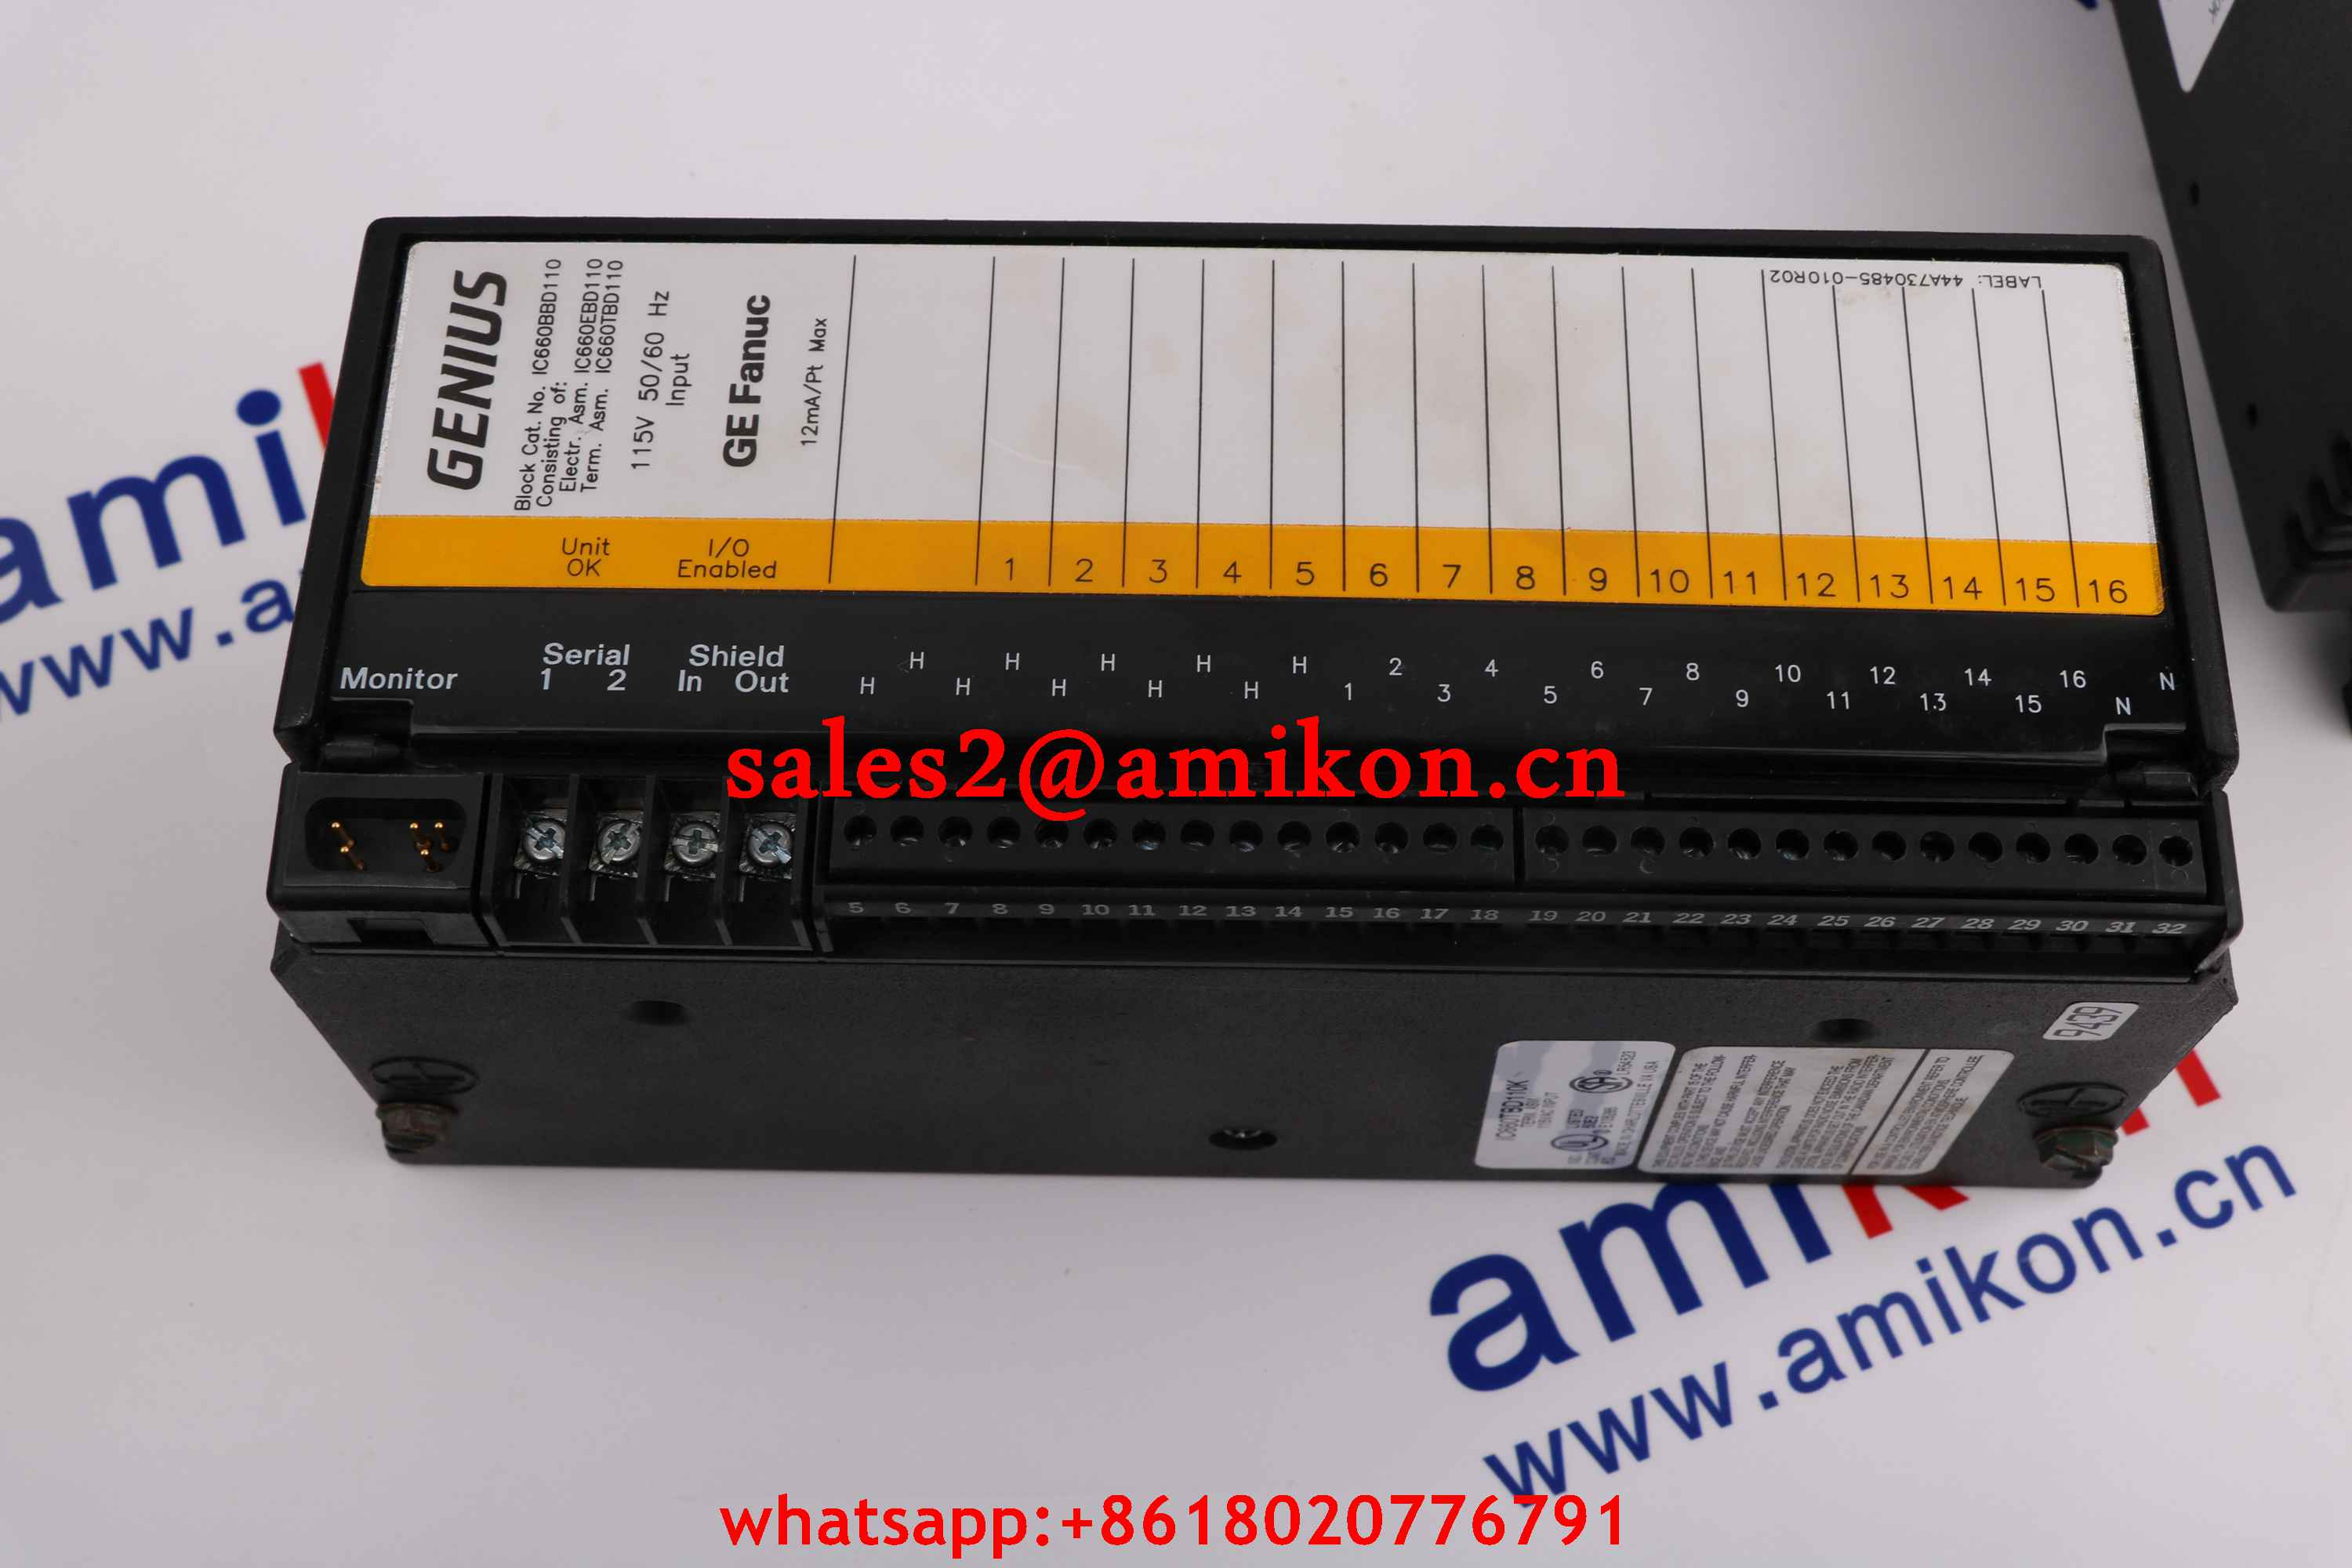 GE FANUC DS200IIBDG1ACA  new and Original USA 1 year warranty